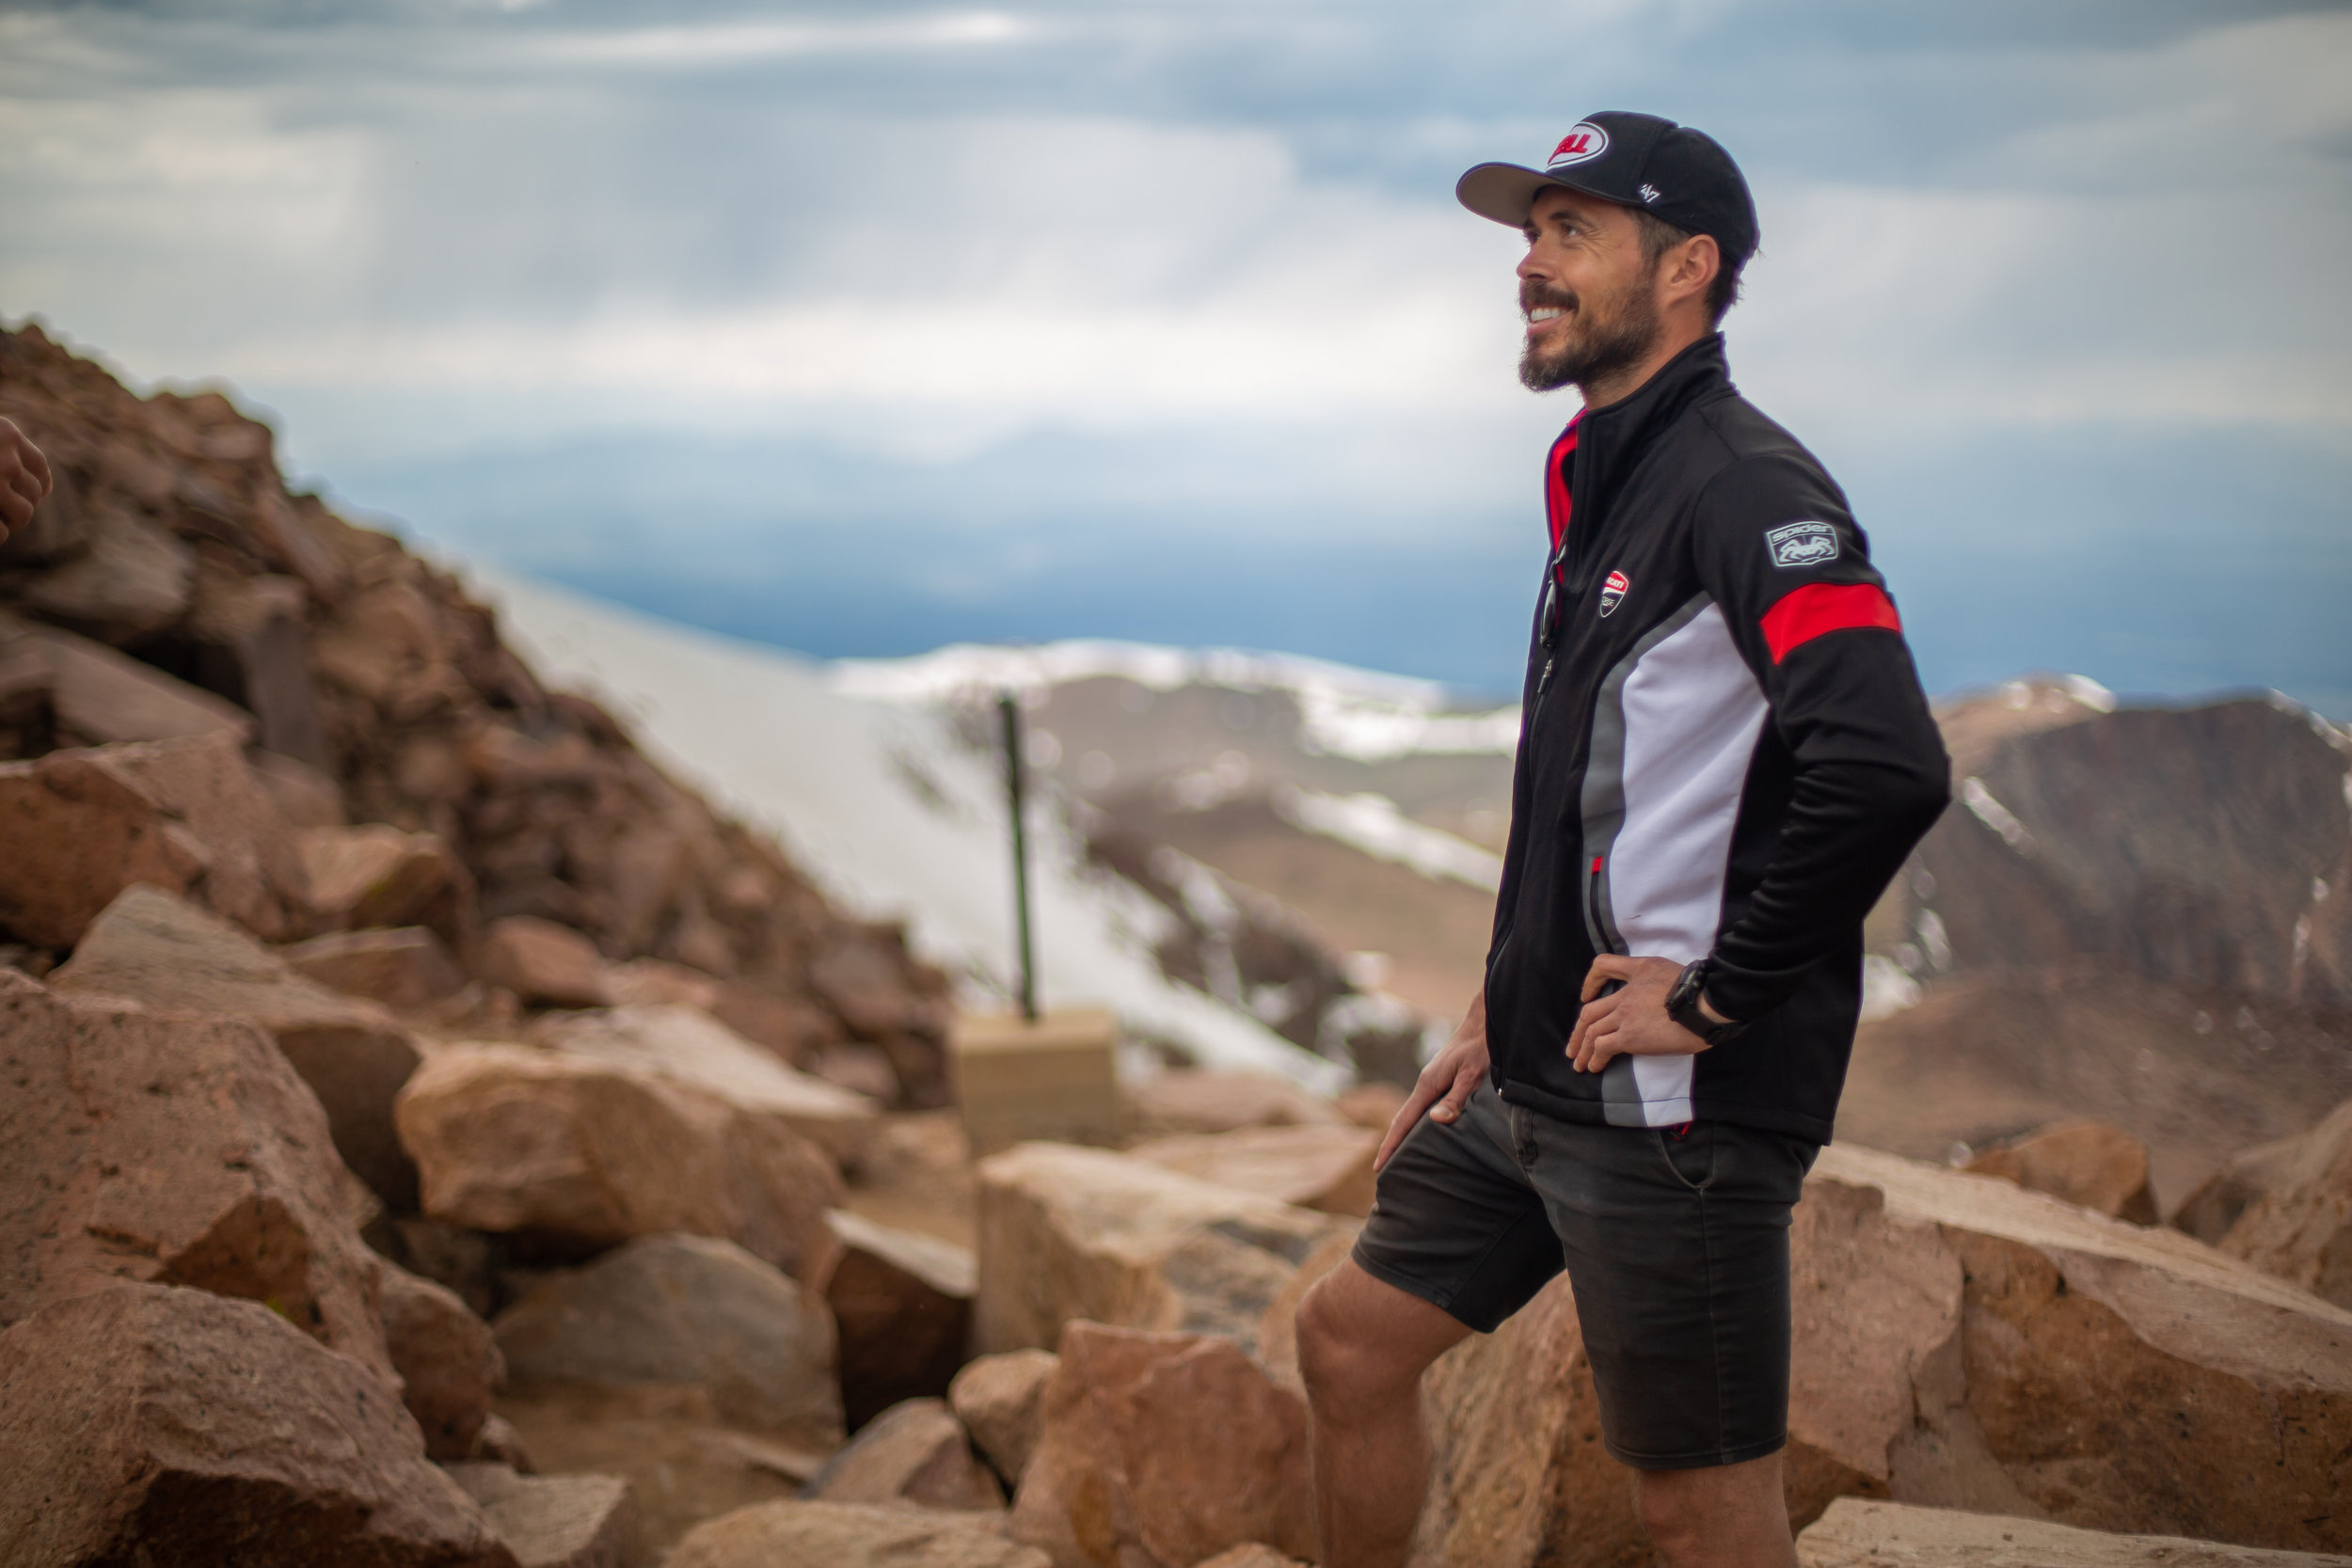 Carlin Dunne - 2019 Pikes Peak_UC77471_High.jpg